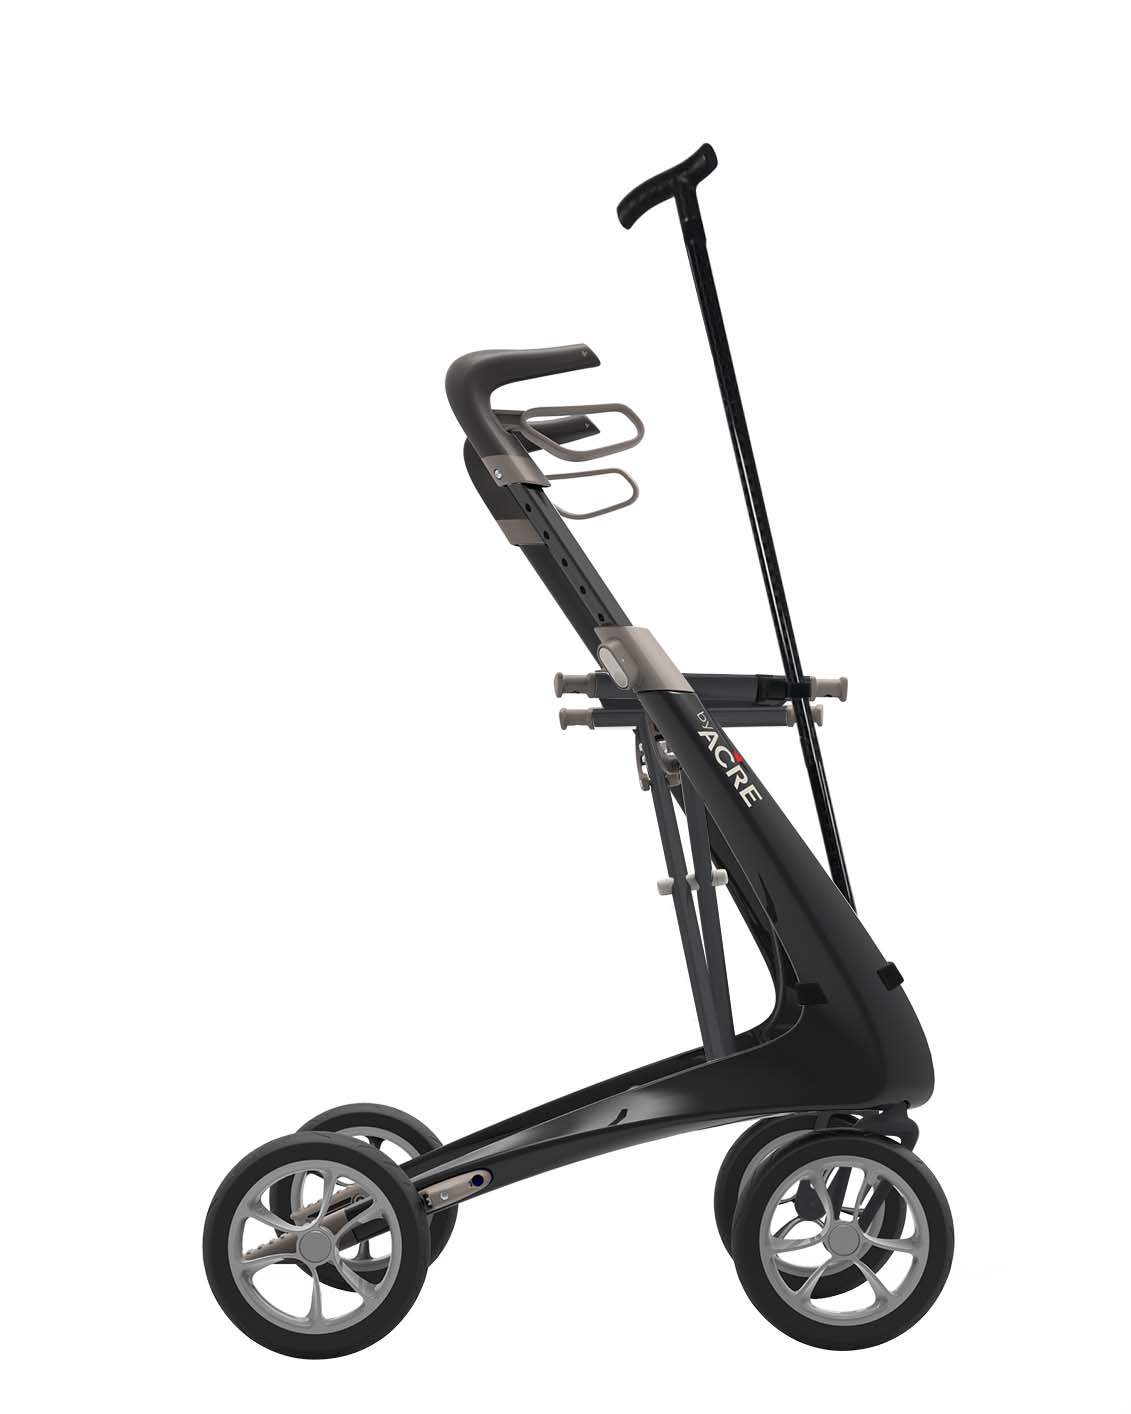 Cane holder on the Black Carbon Ultralight Rollator with a cane byACRE - viewed in profile